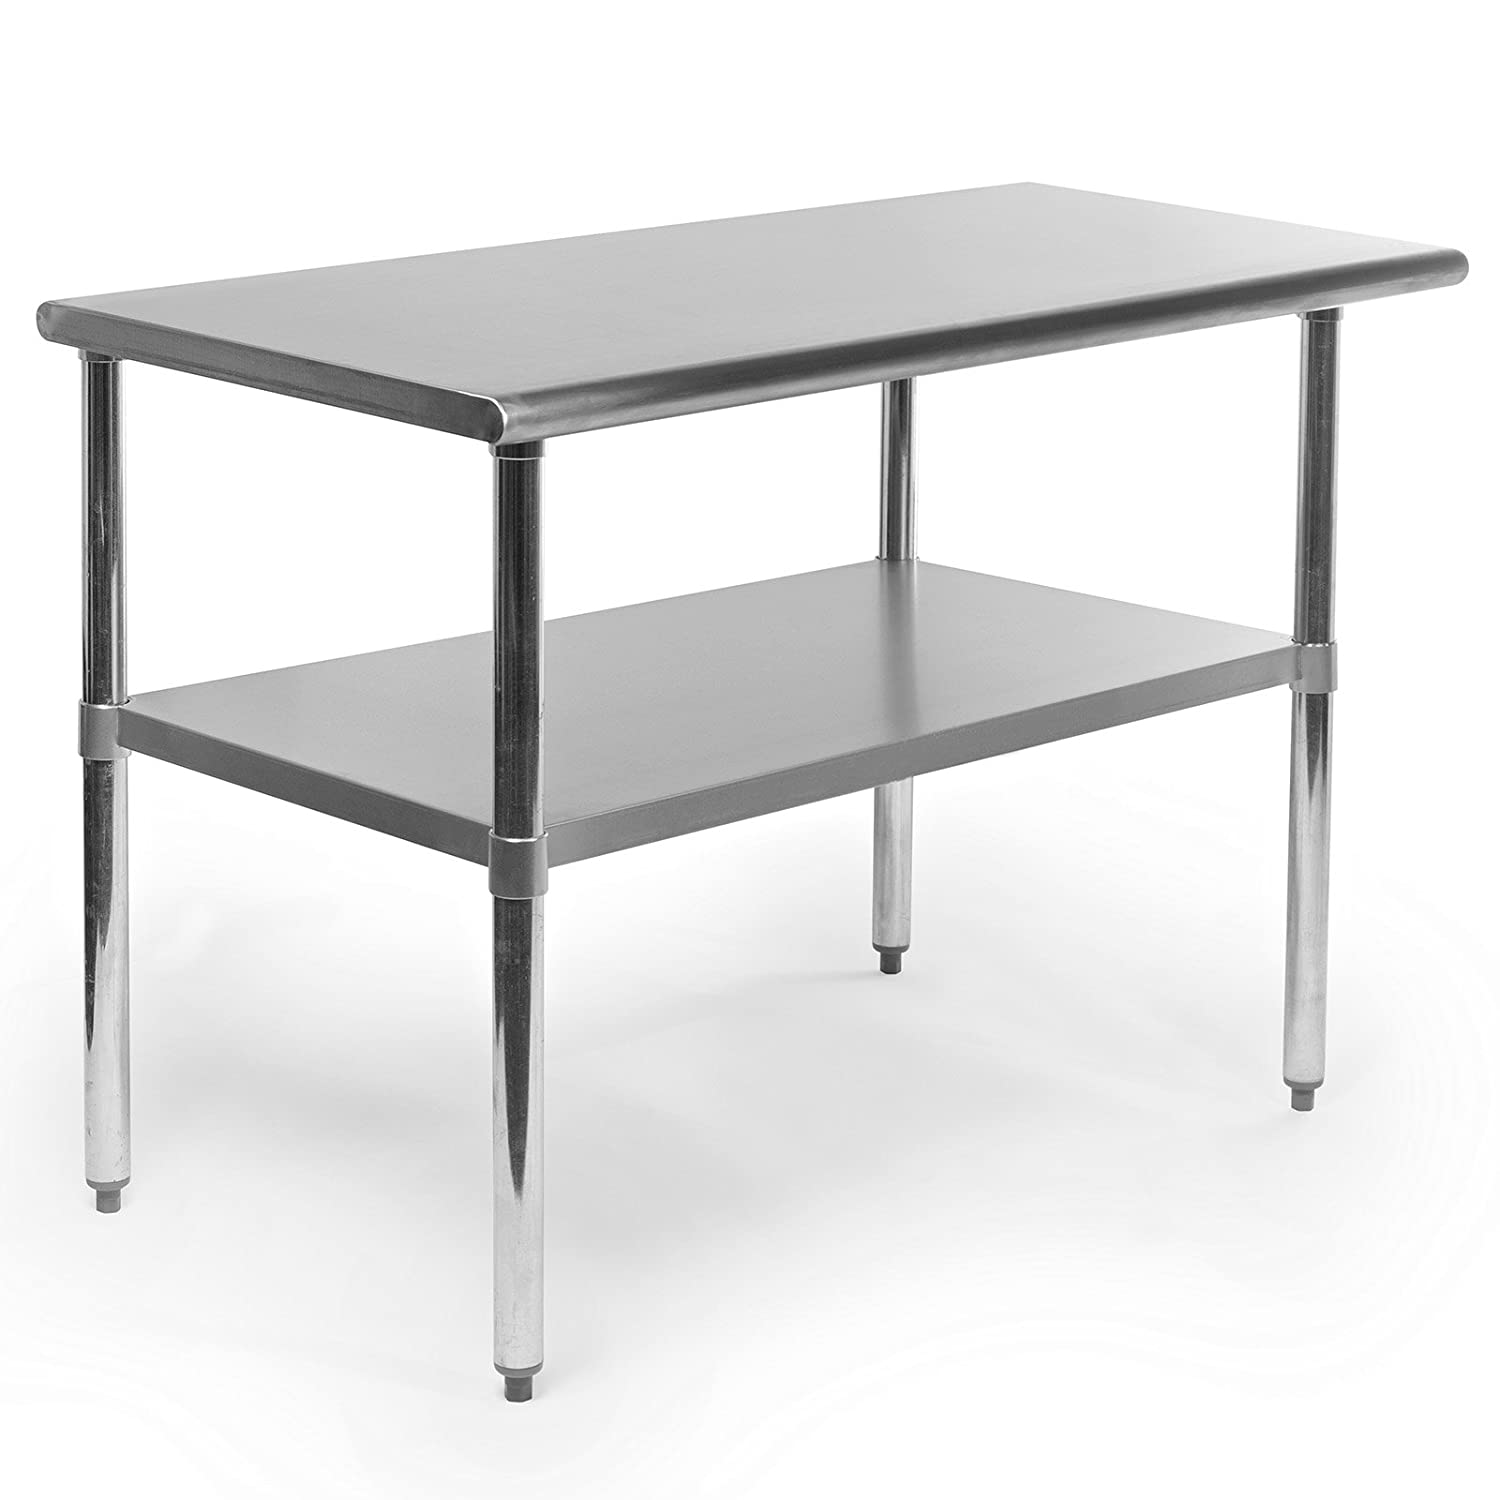 Amazon.com: Gridmann 48-Inch X 24-Inch Stainless Steel Kitchen Table ...